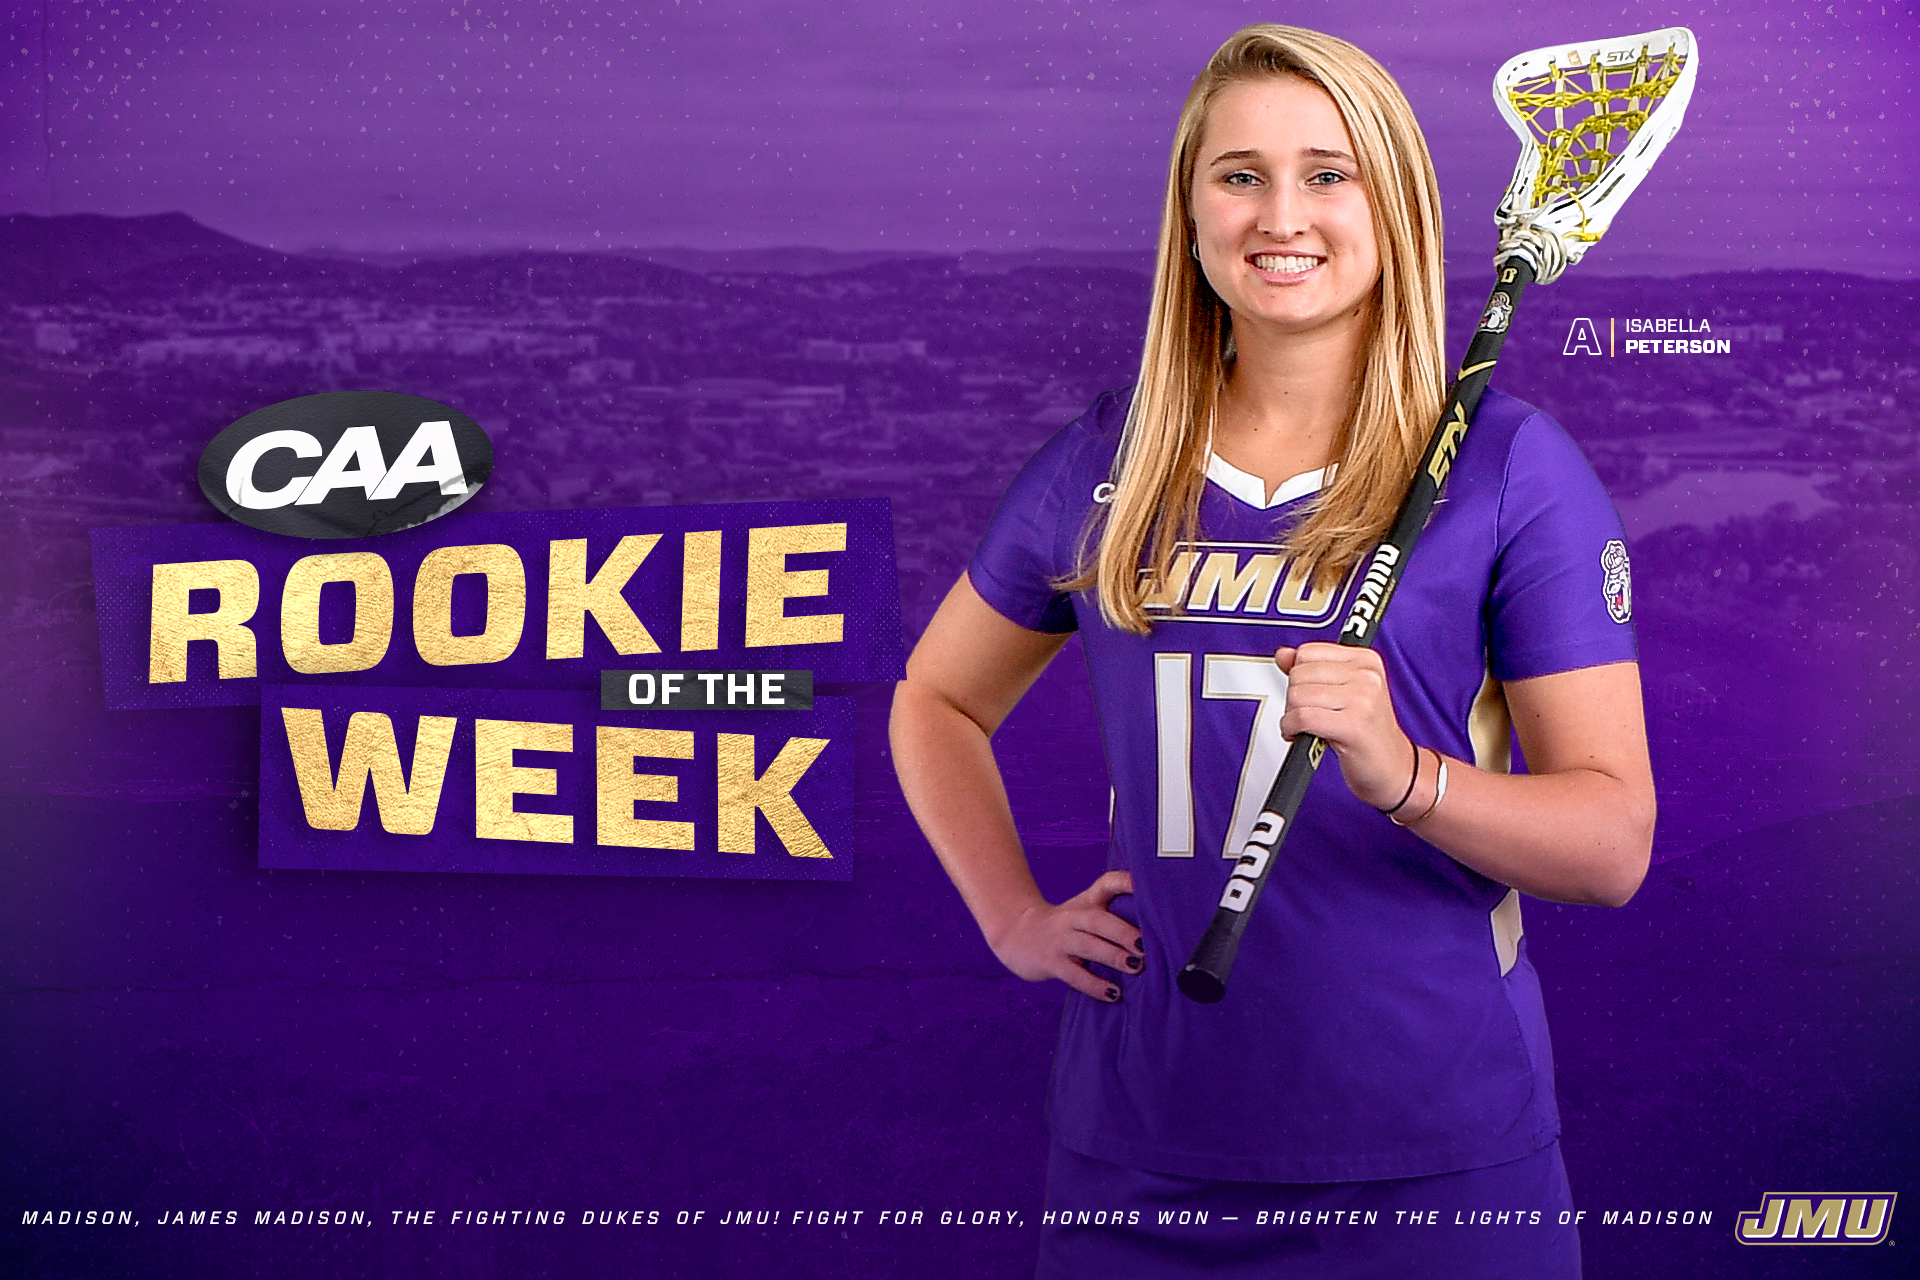 isabella peterson caa rookie of the week